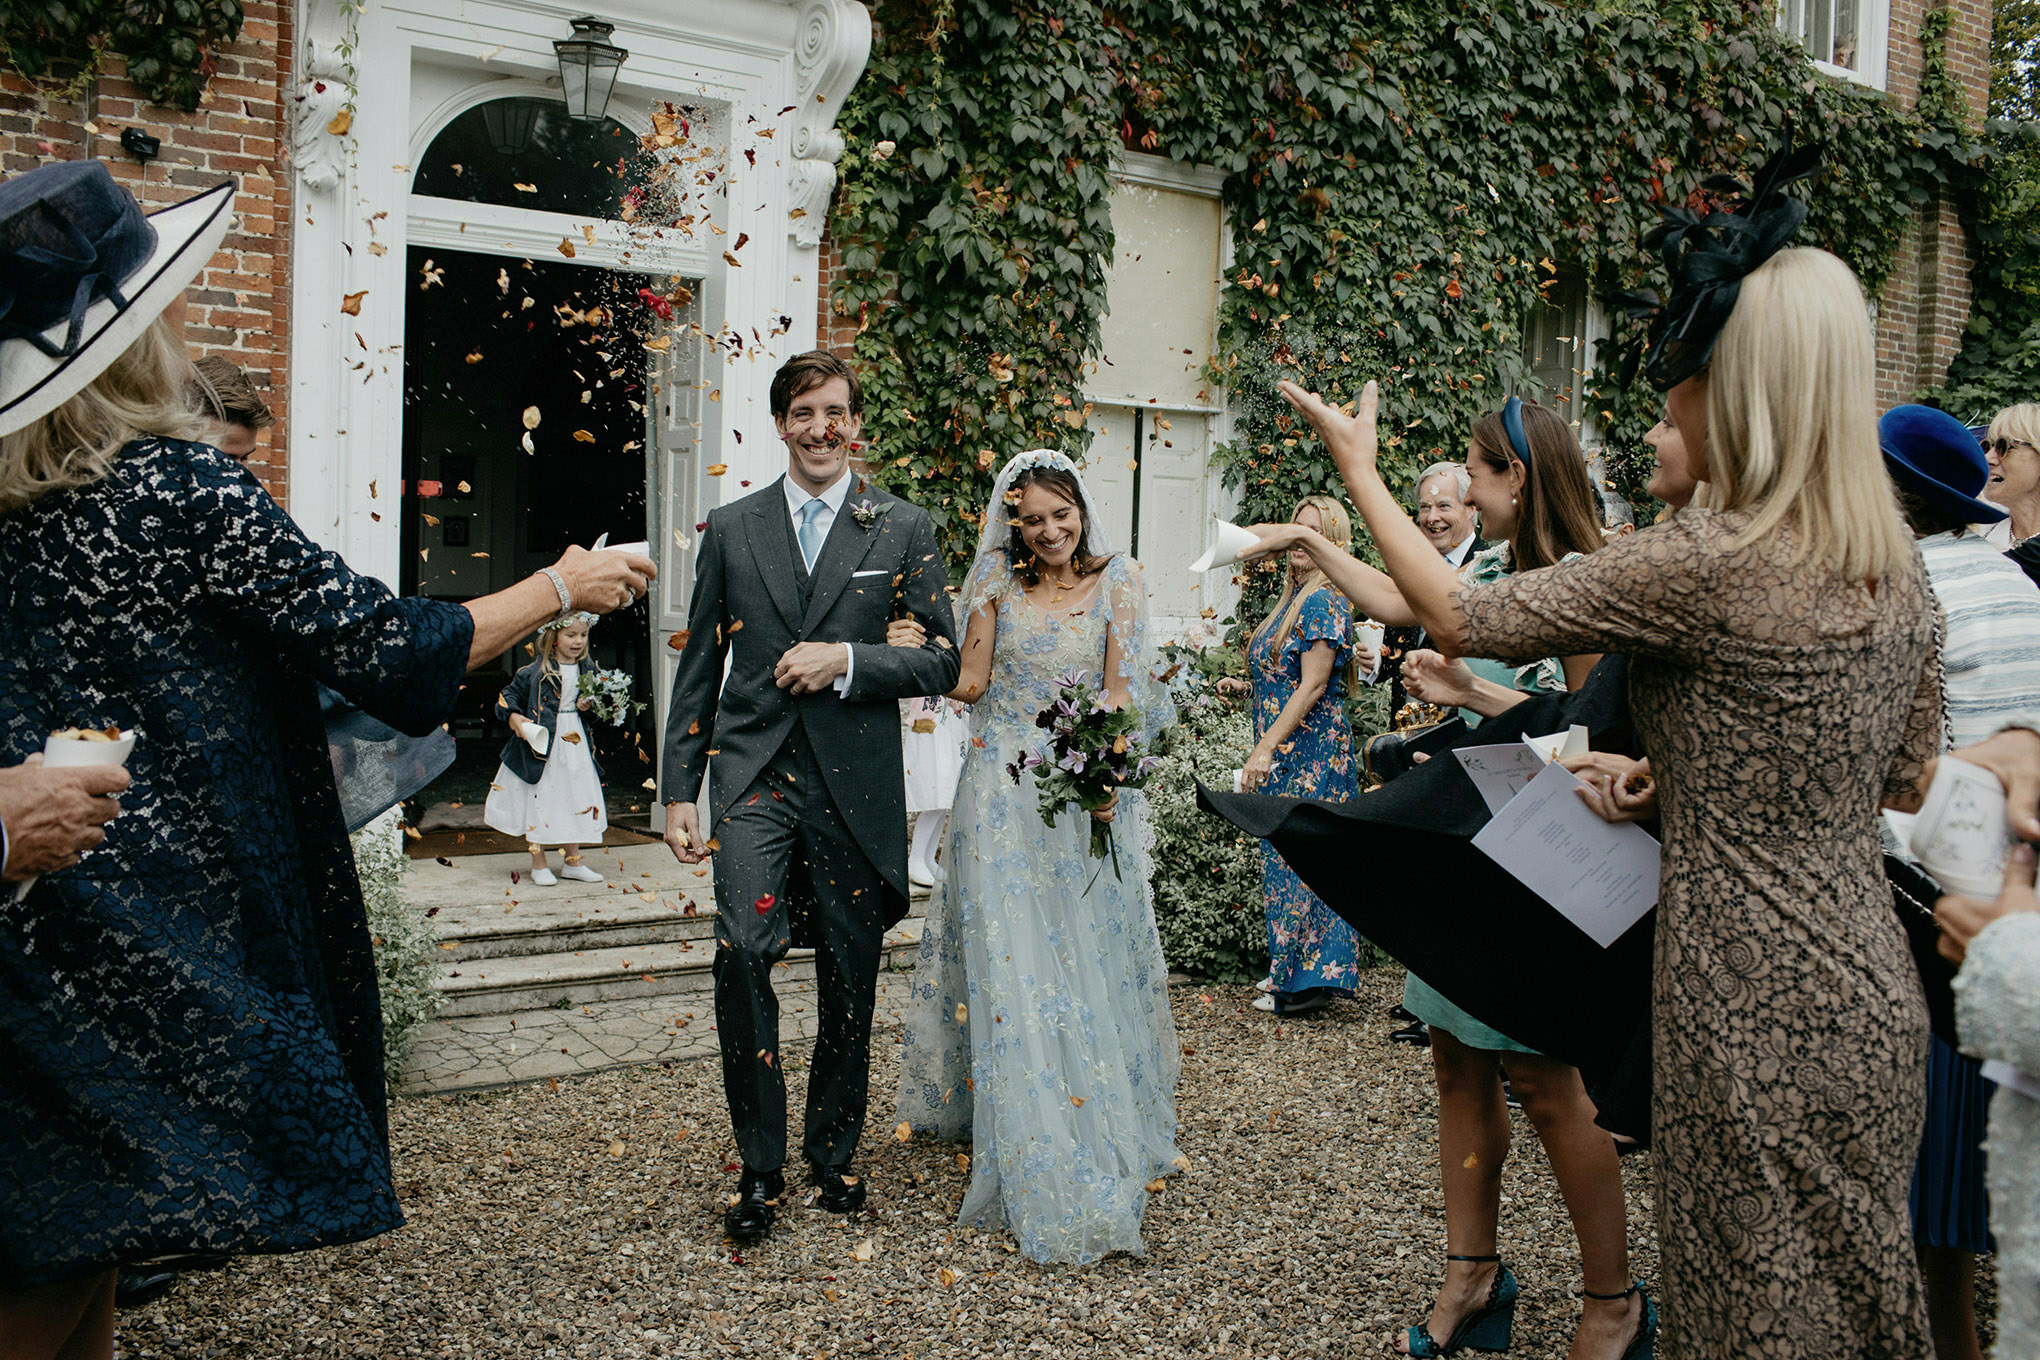 editorial wedding photographer based in london